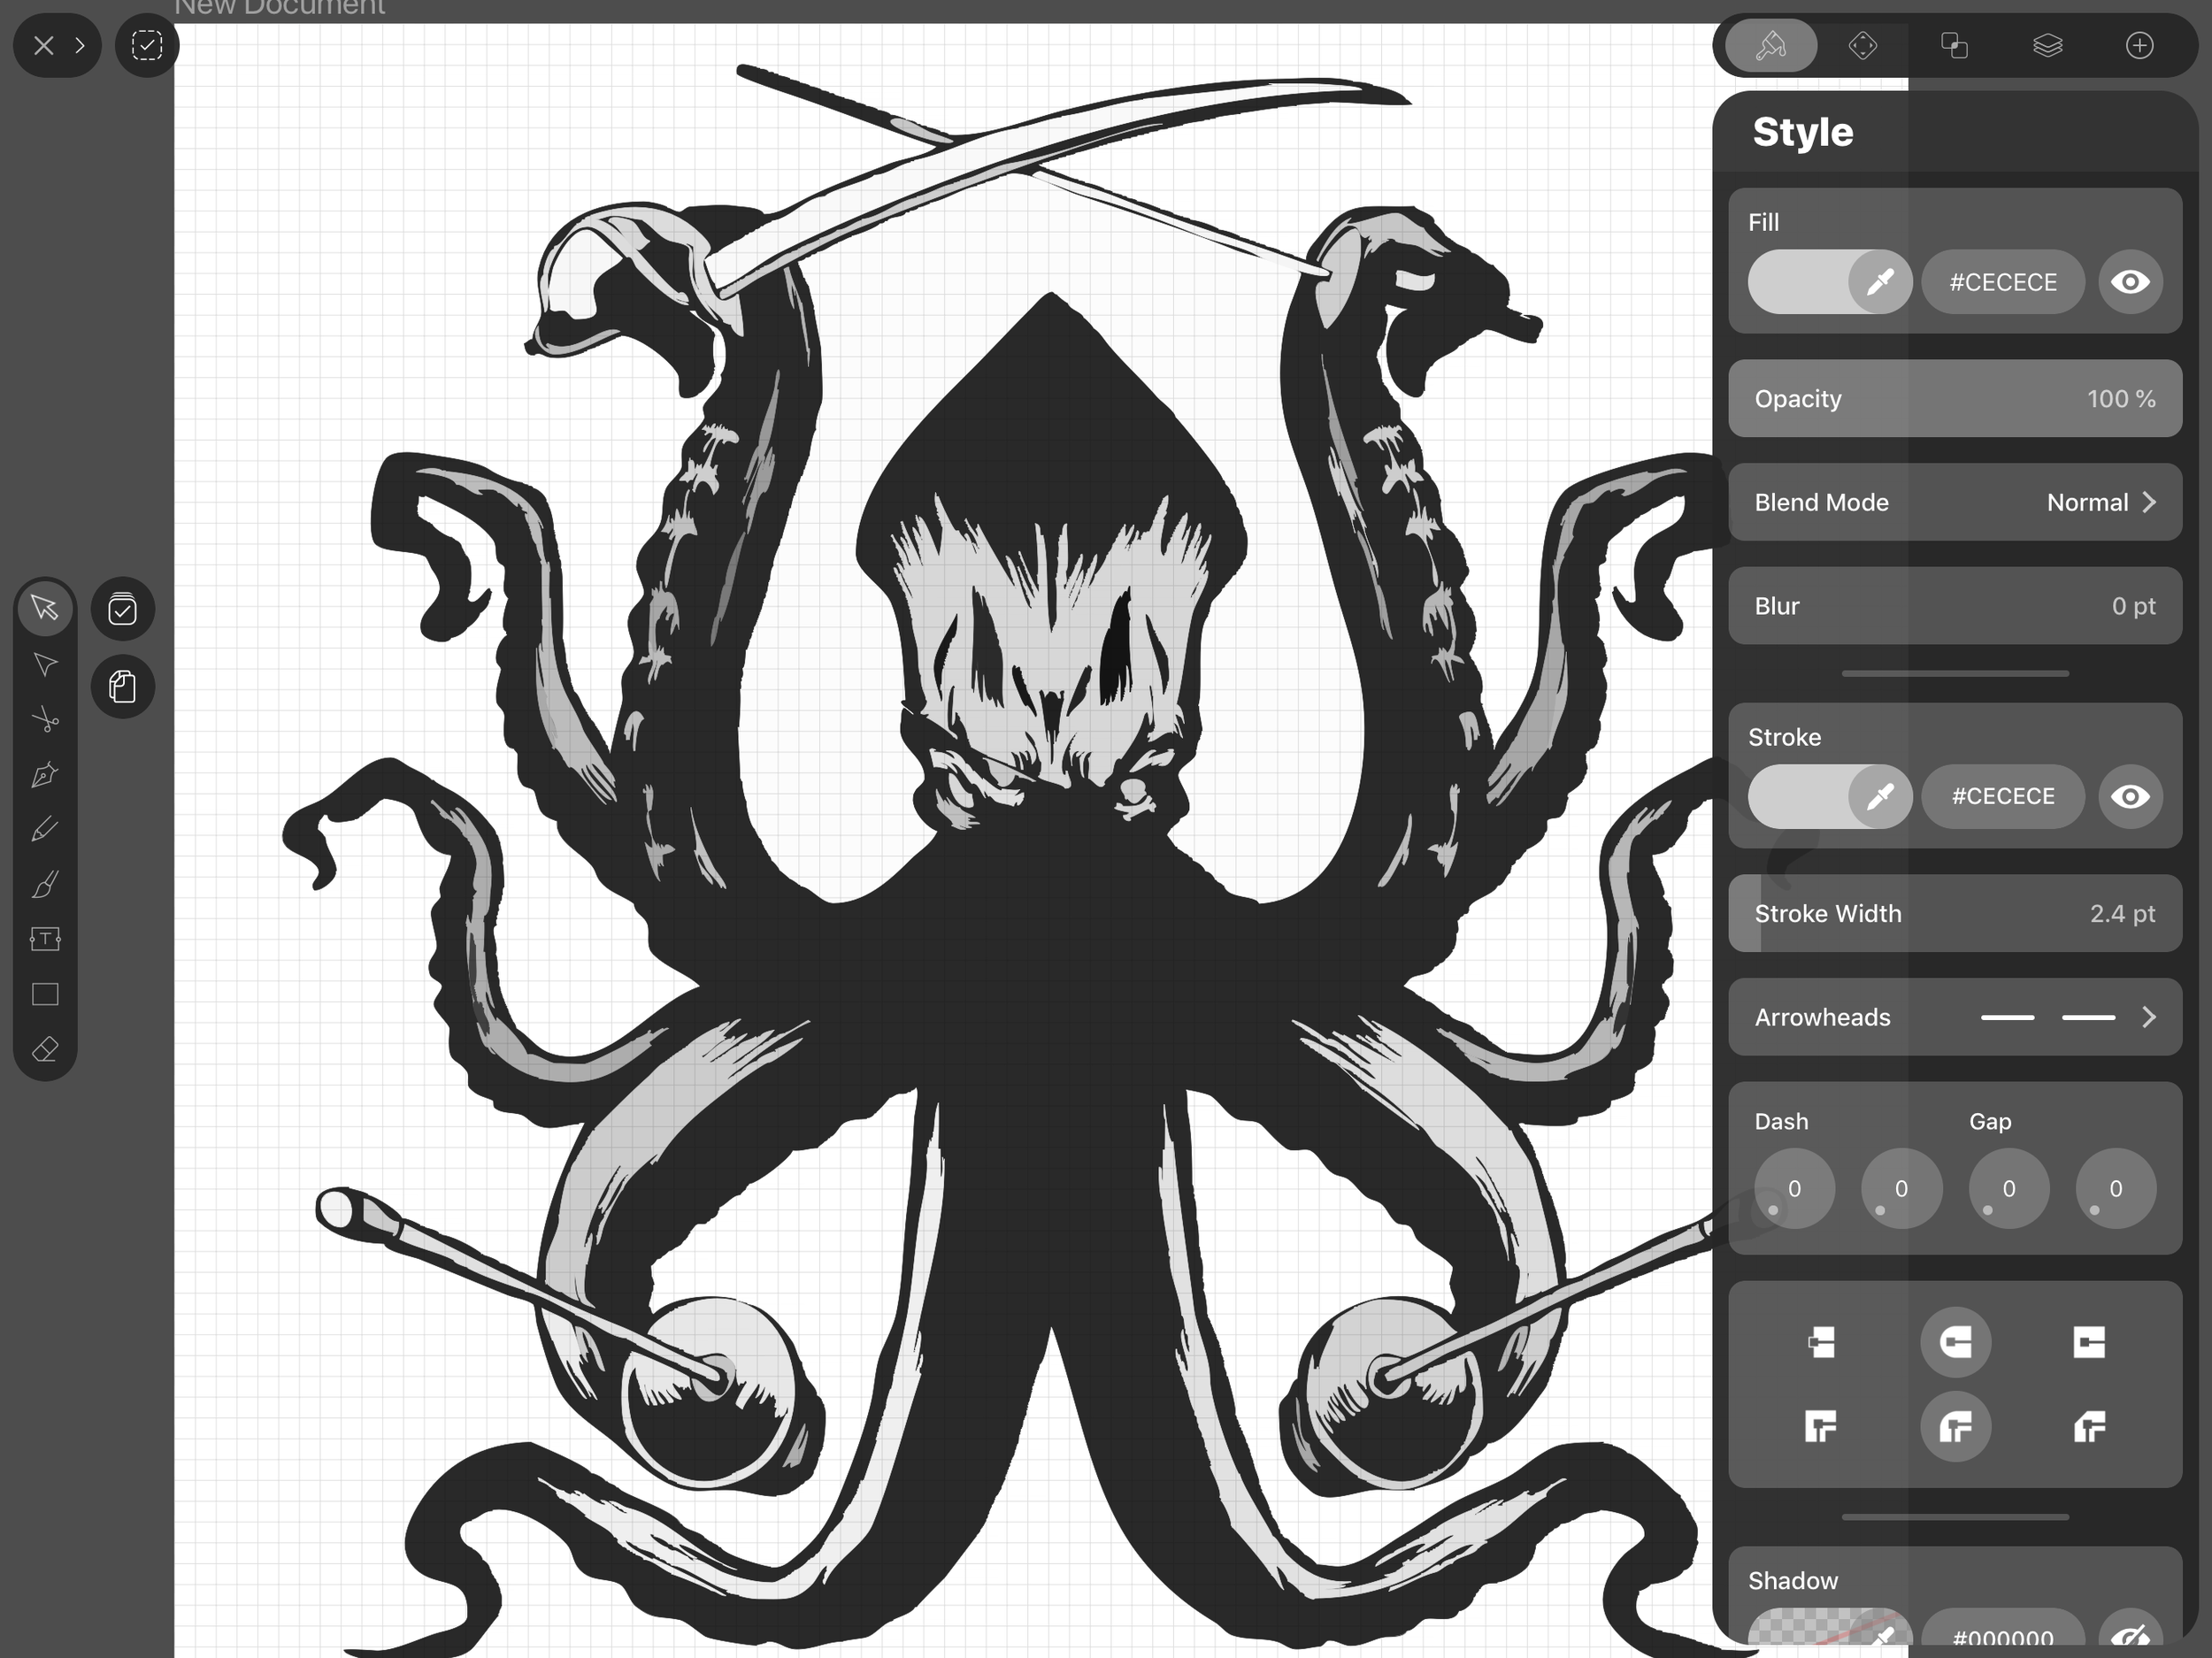 The kraken's image traced. One can see that some elements are missing due to lack of detail. It's a matter of adjusting to get the right amount to retain the look of the original.